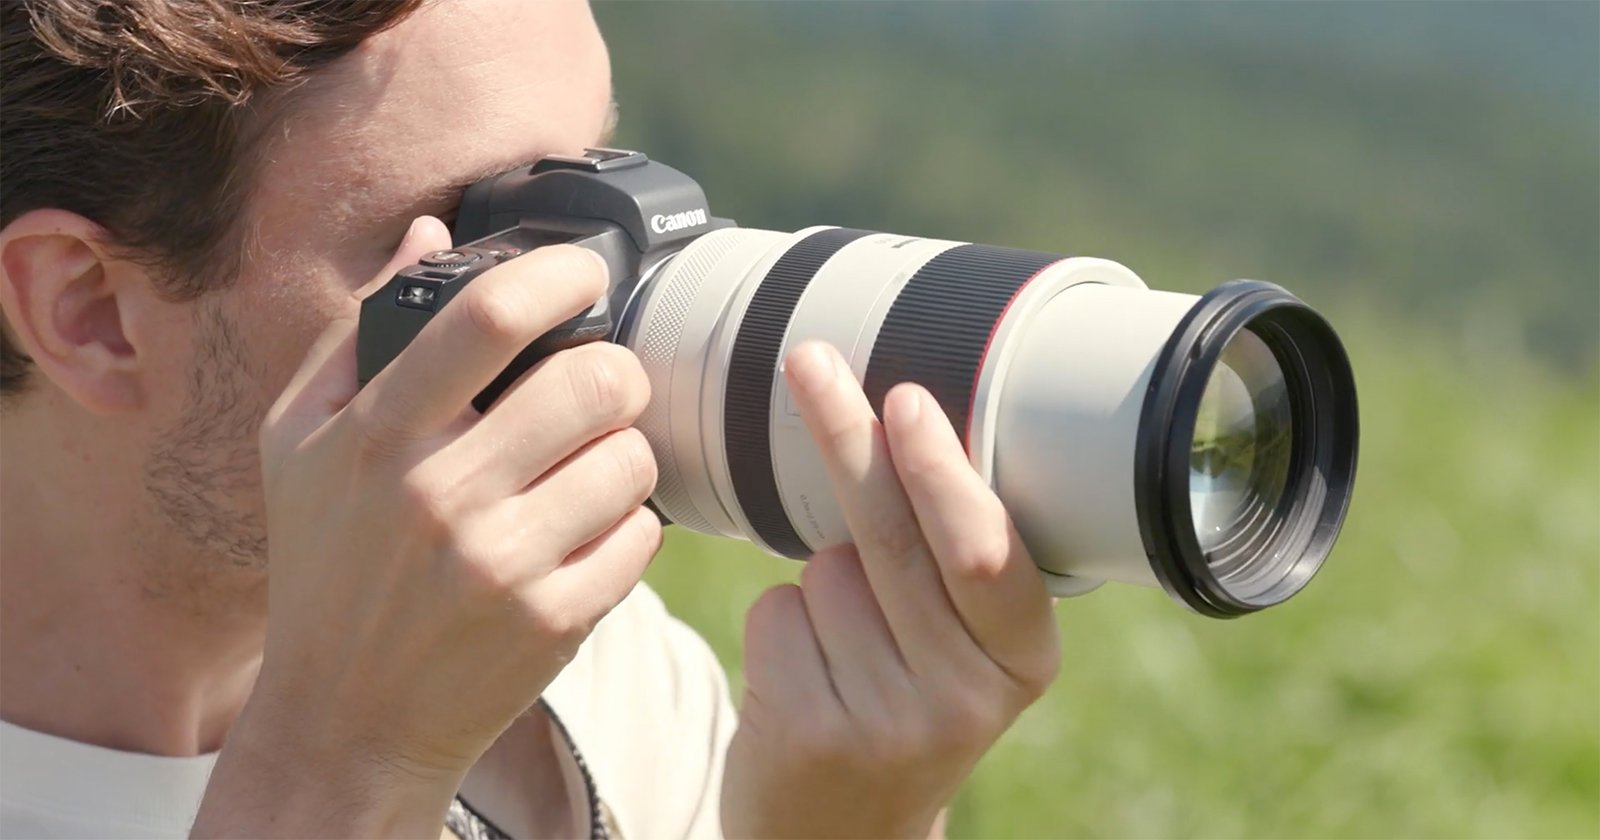 Canon Video Confirms the Tiny RF 70-200mm f/2.8L is NOT an Internal Zoom